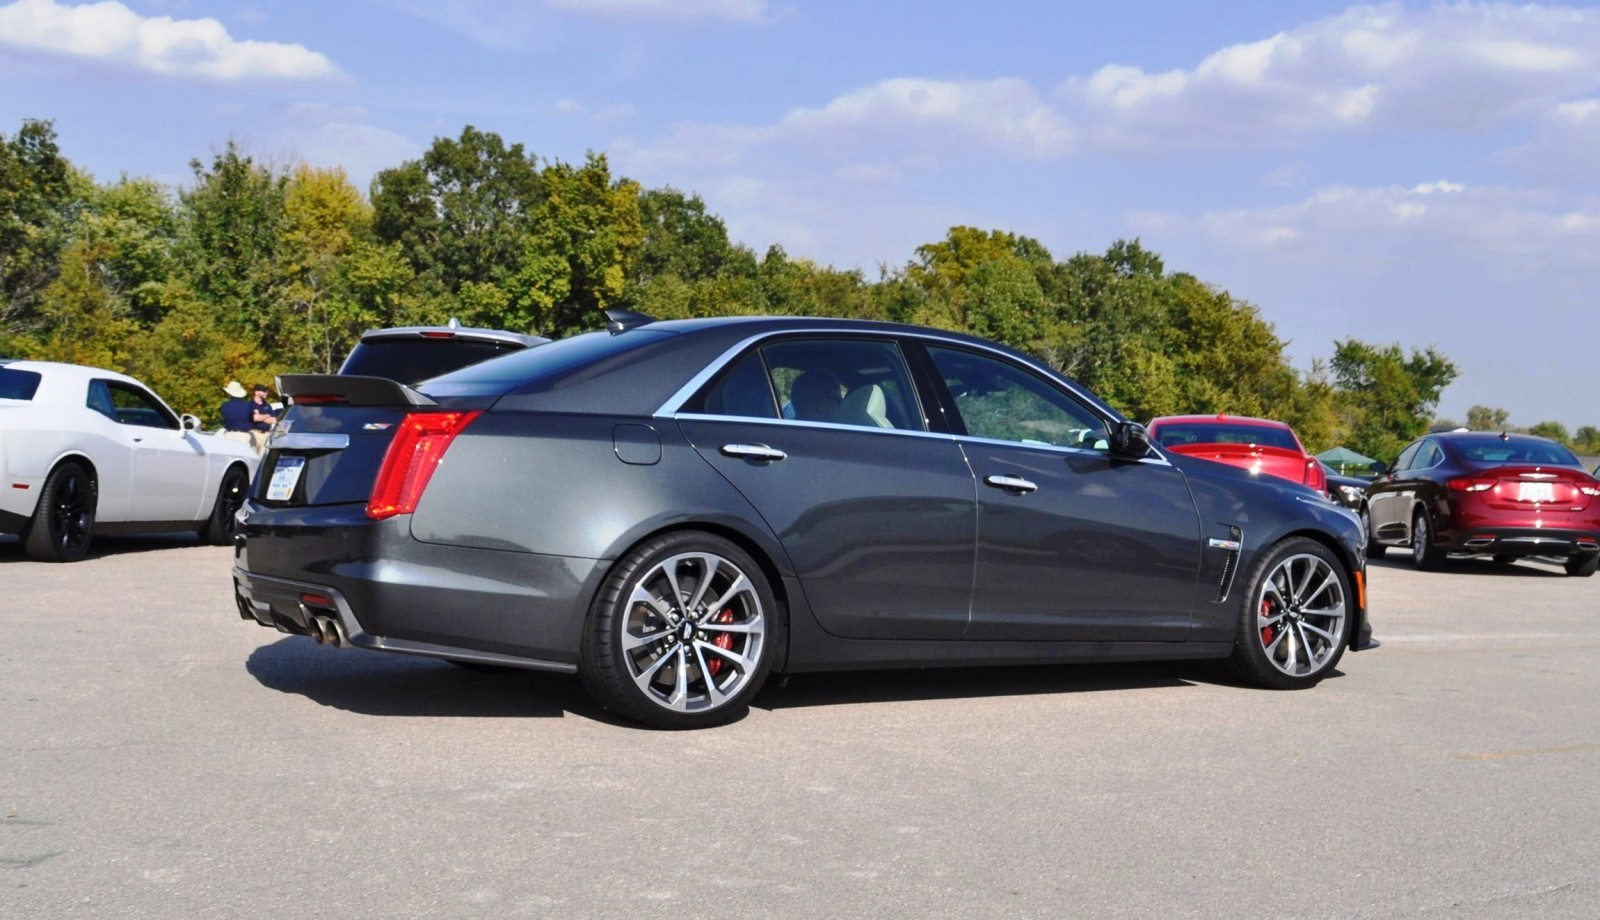 2016 cadillac cts v phantom grey and carbon package 49. Black Bedroom Furniture Sets. Home Design Ideas